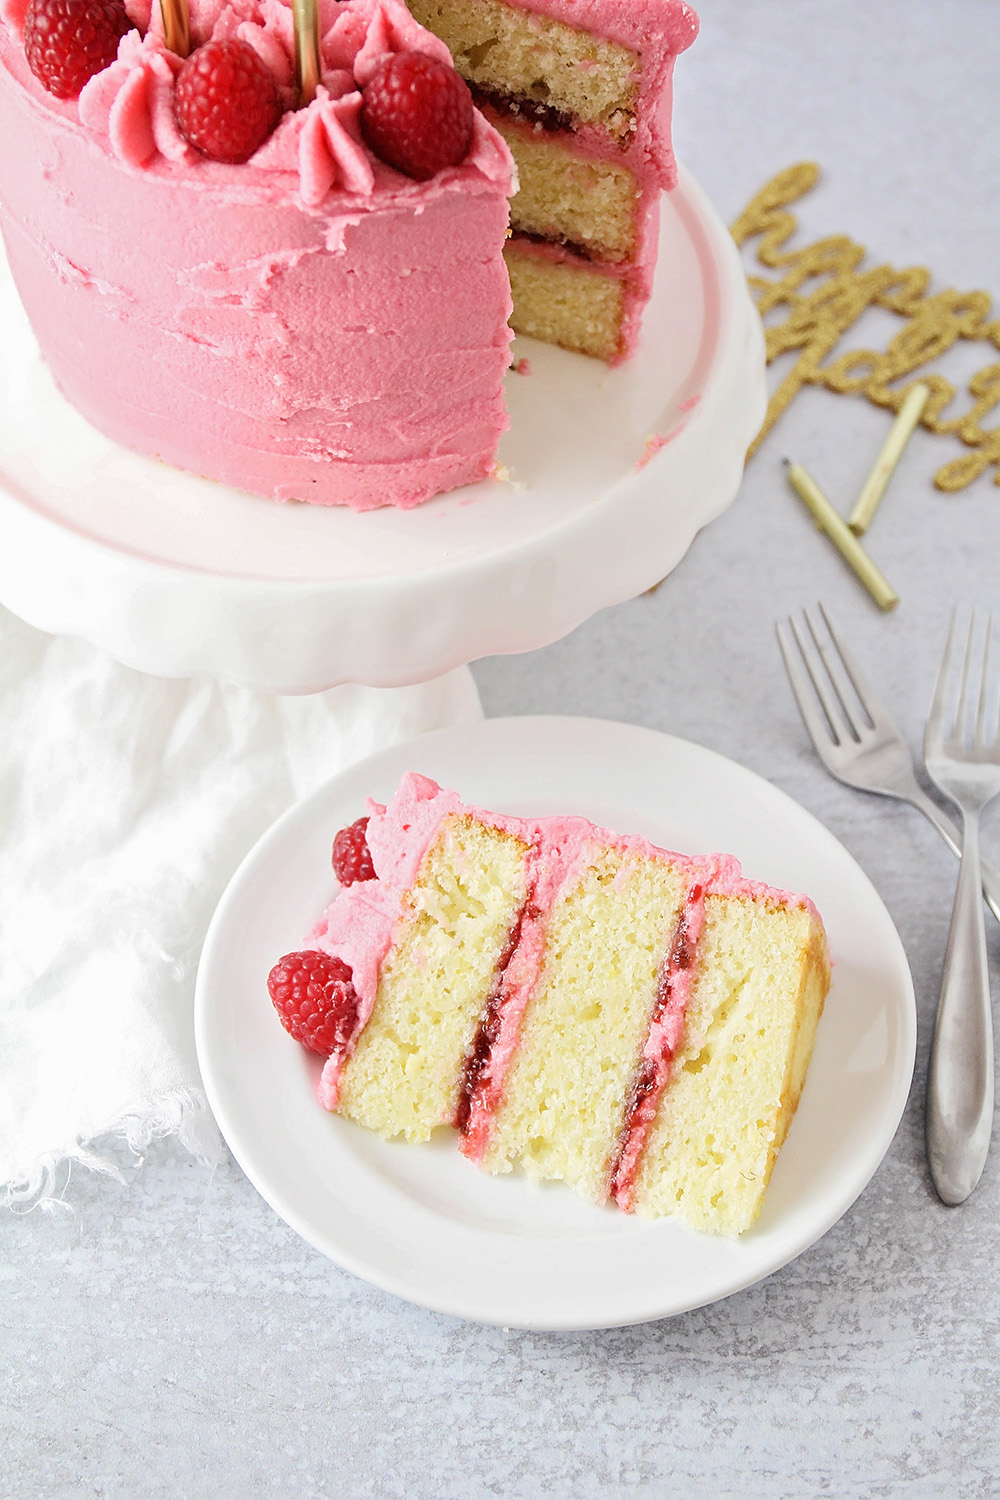 This gorgeous raspberry lemon cake has the most delicious combination of flavors. It's fresh and light, and perfect for spring!